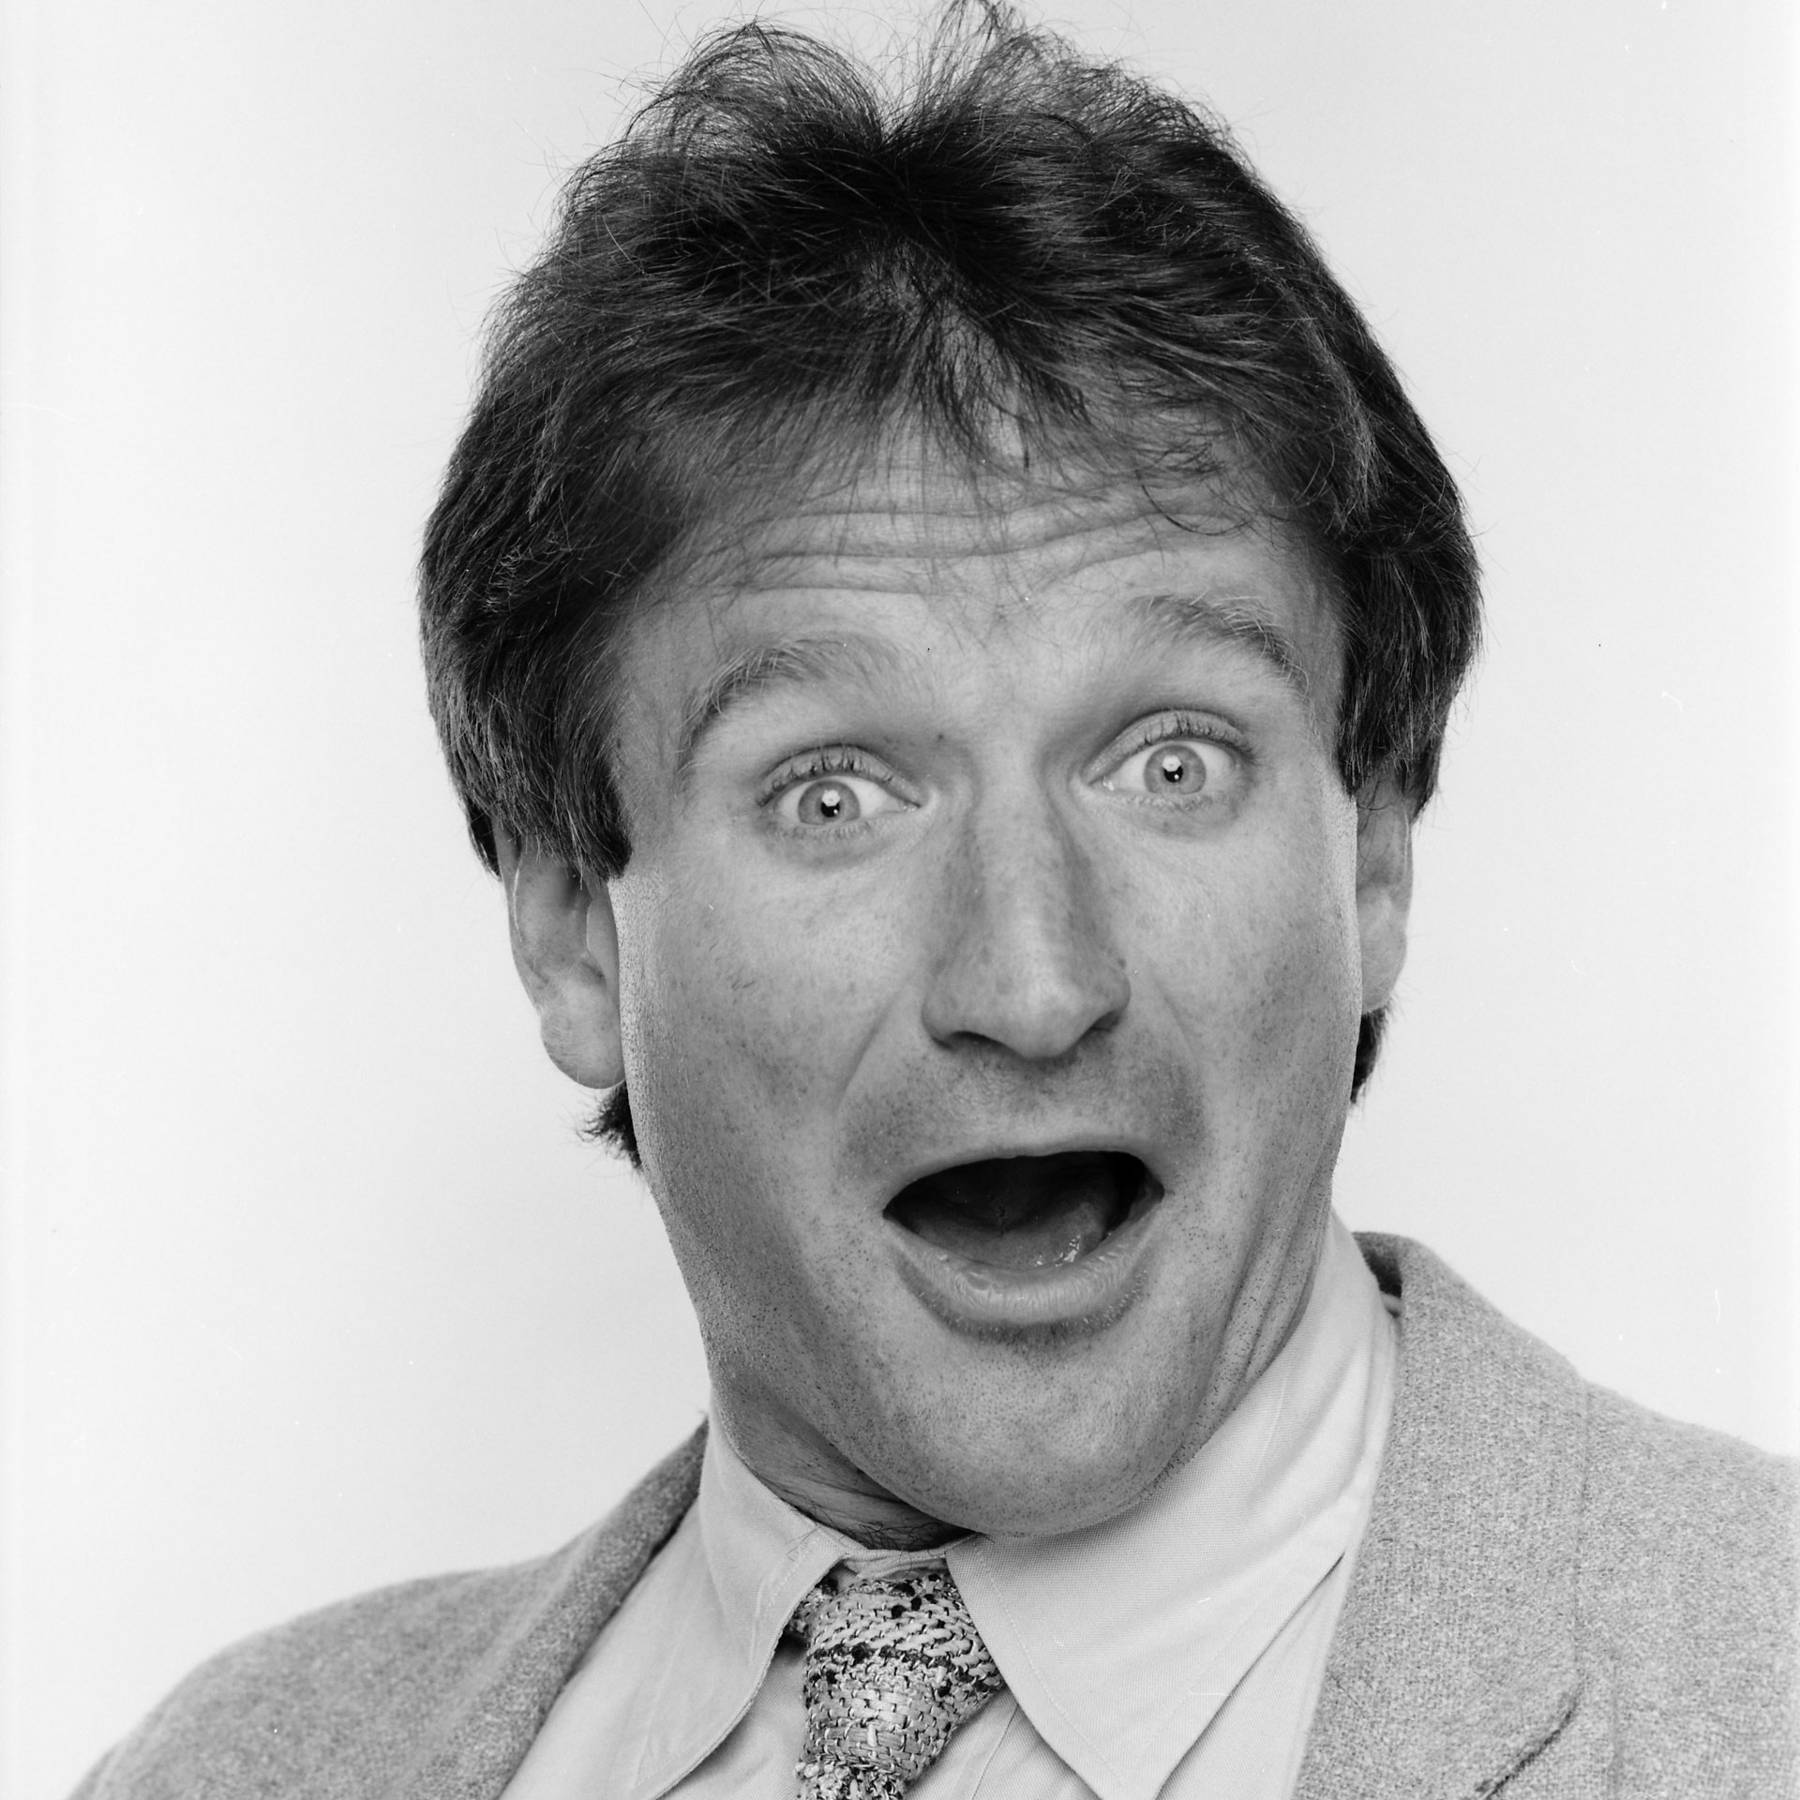 Robin-Williams-02-GQ-3Aug17_getty_b.jpg